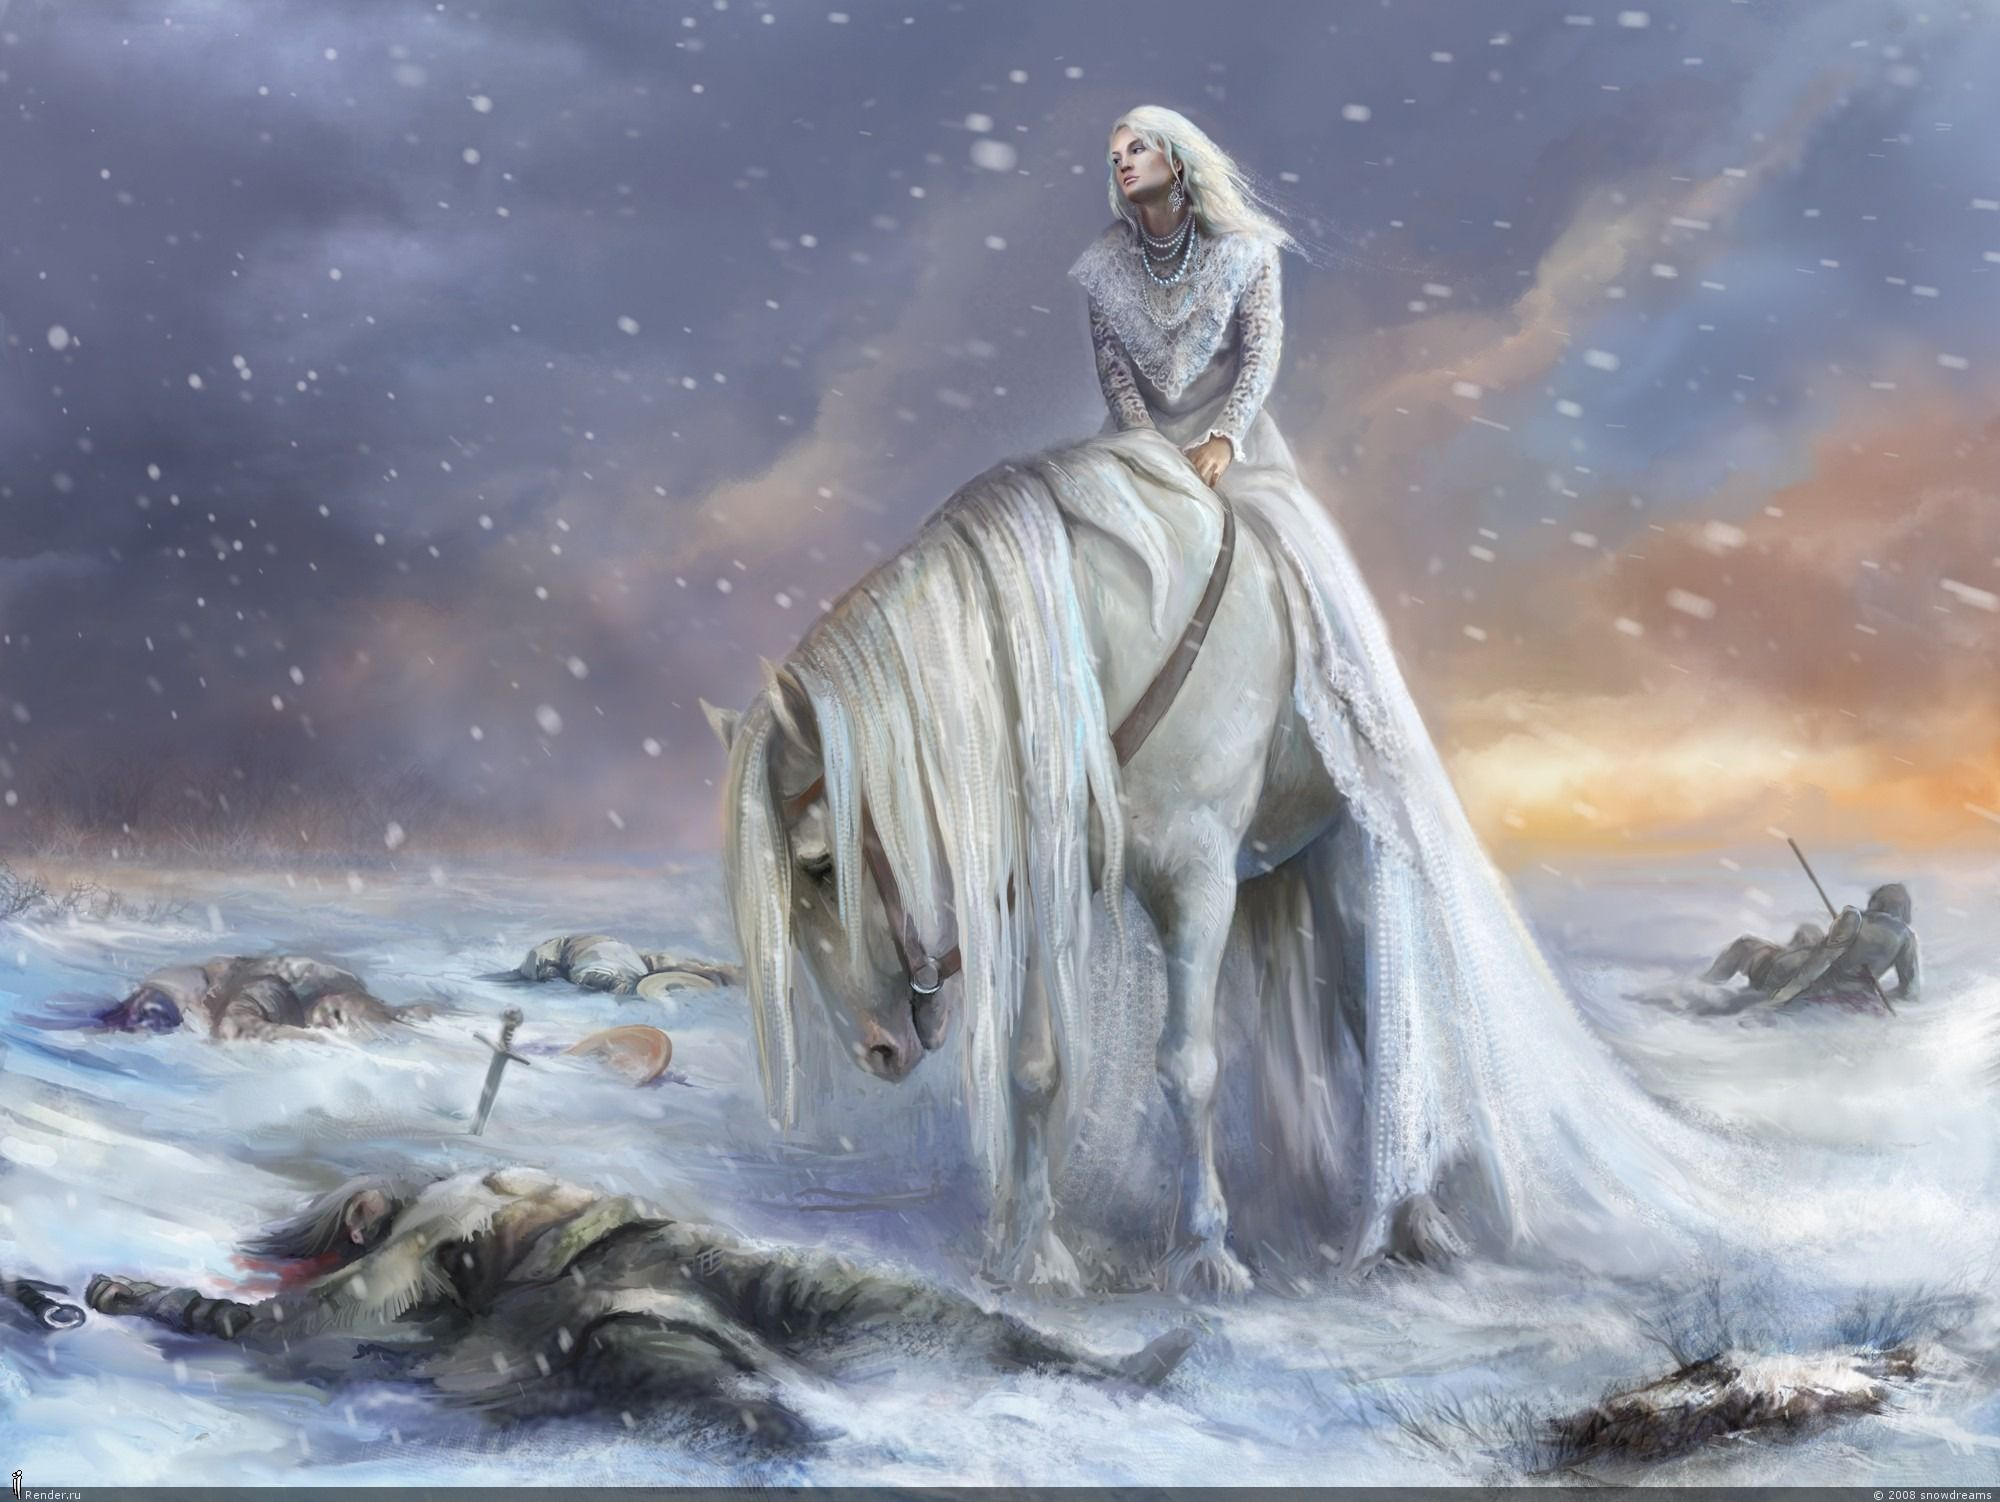 Simple Wallpaper Horse Winter - e493c7dd9cbcc04ddb01e7bca2e2f935  Pictures_93628.jpg